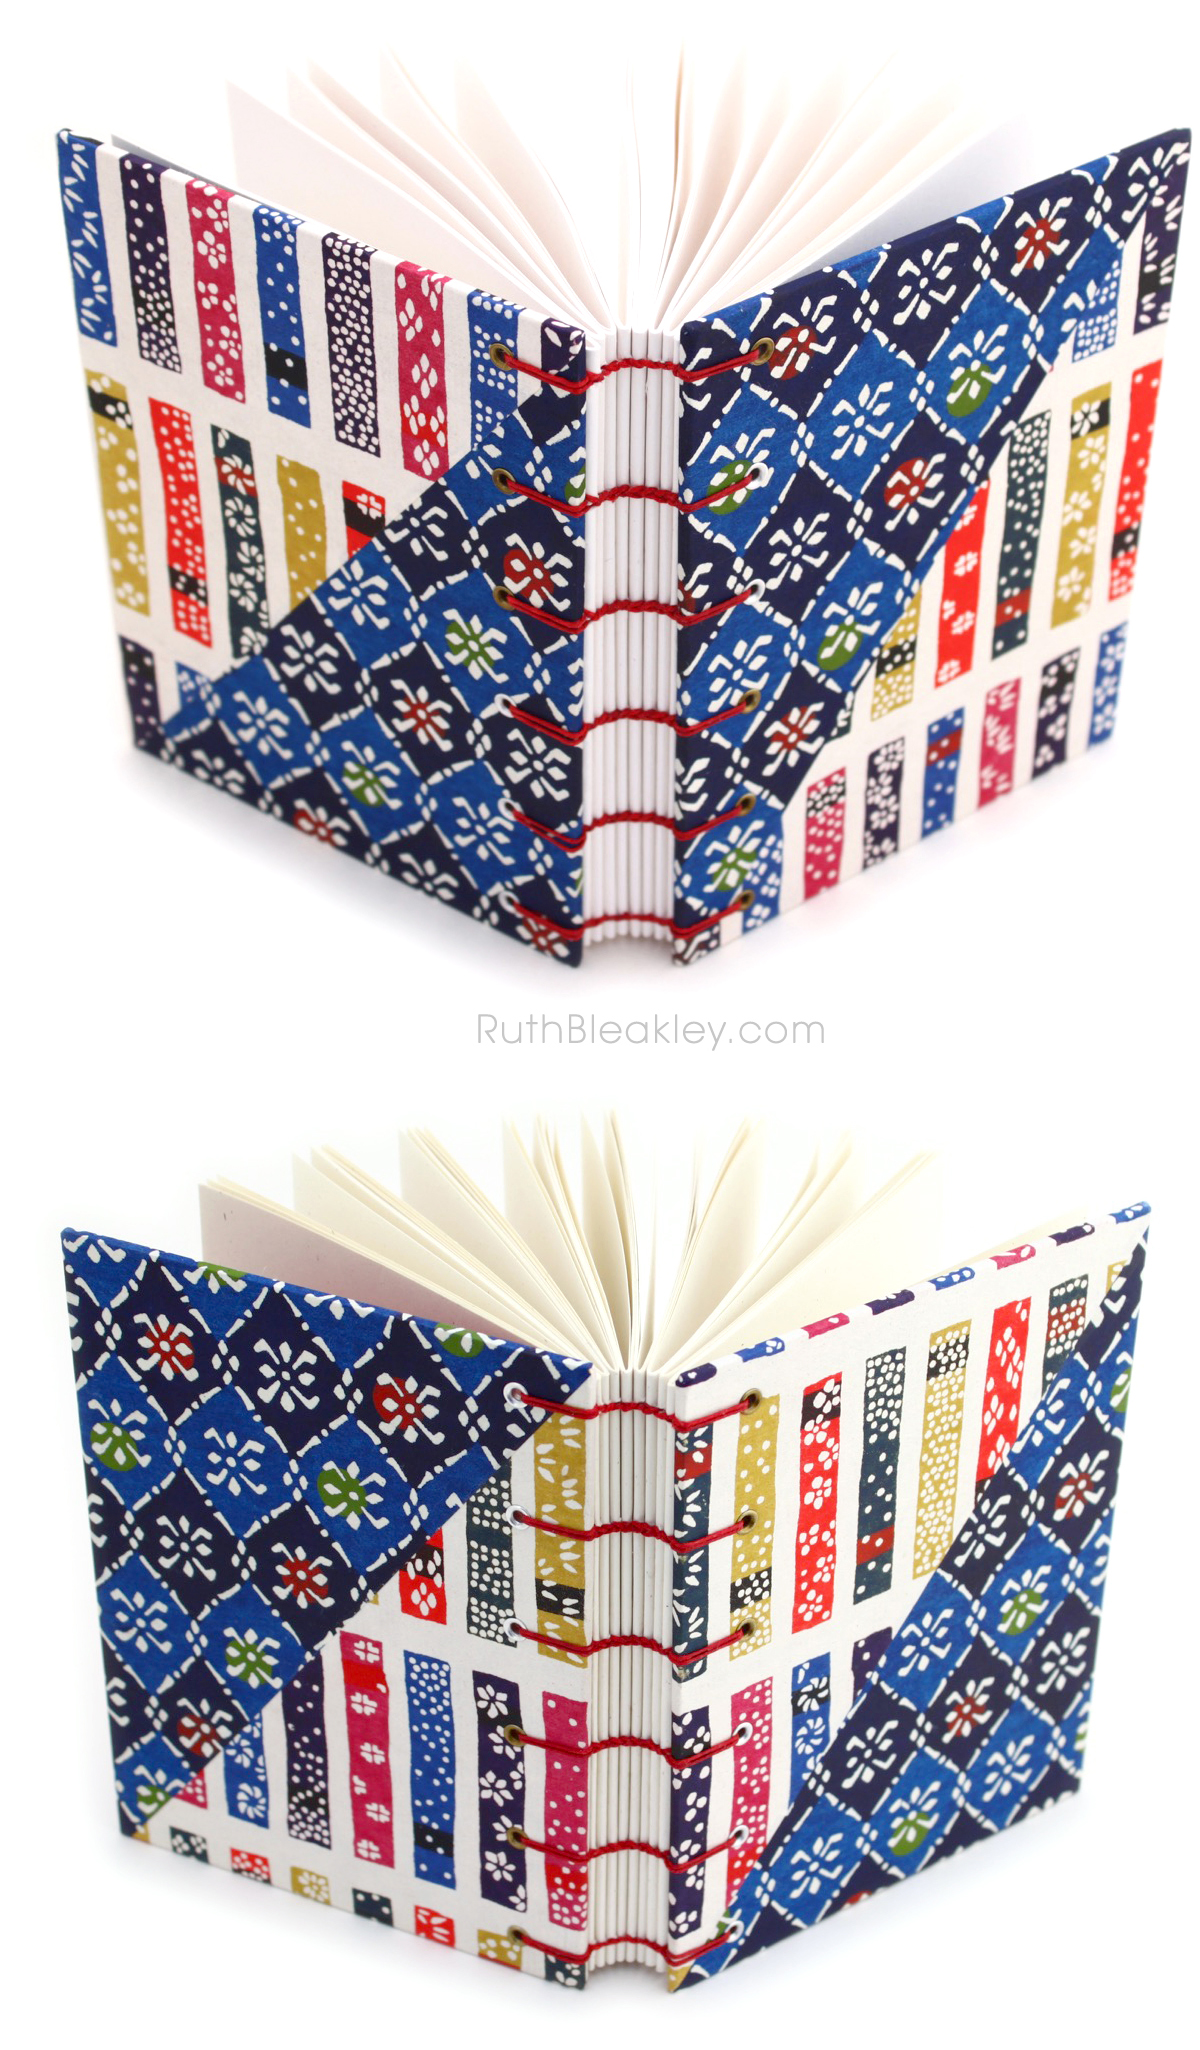 Katazome shi Colorful Japanese Paper Twin Journals by Ruth Bleakley